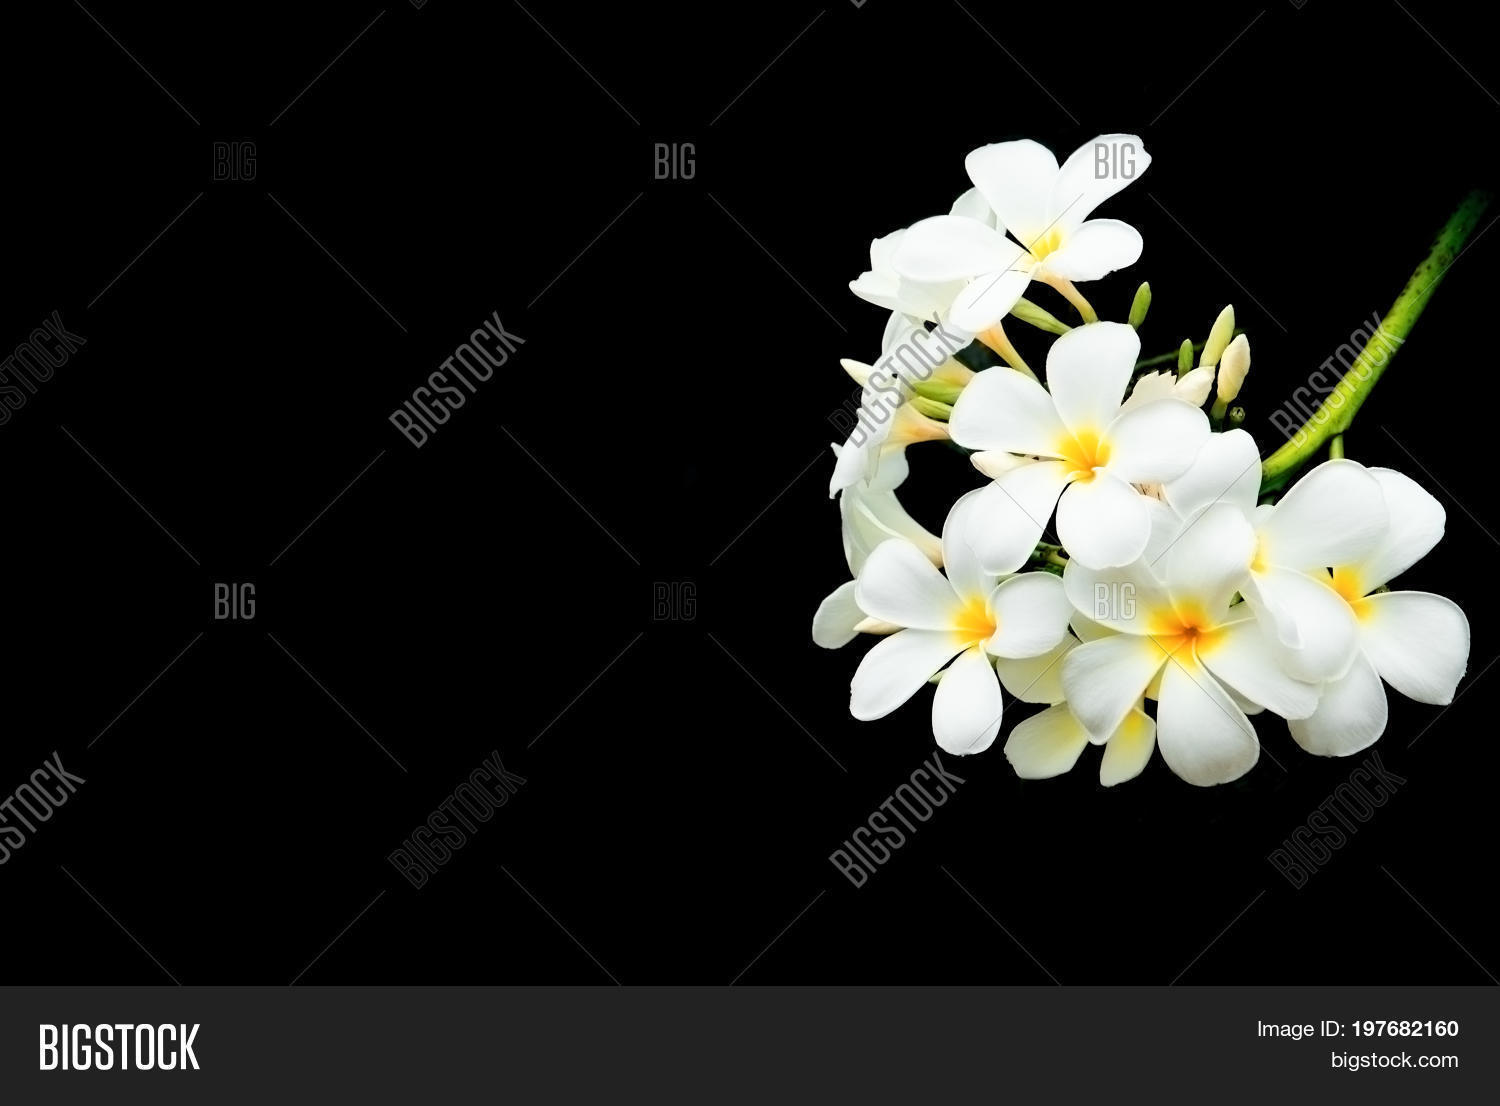 Plumeria Flower White Image Photo Free Trial Bigstock